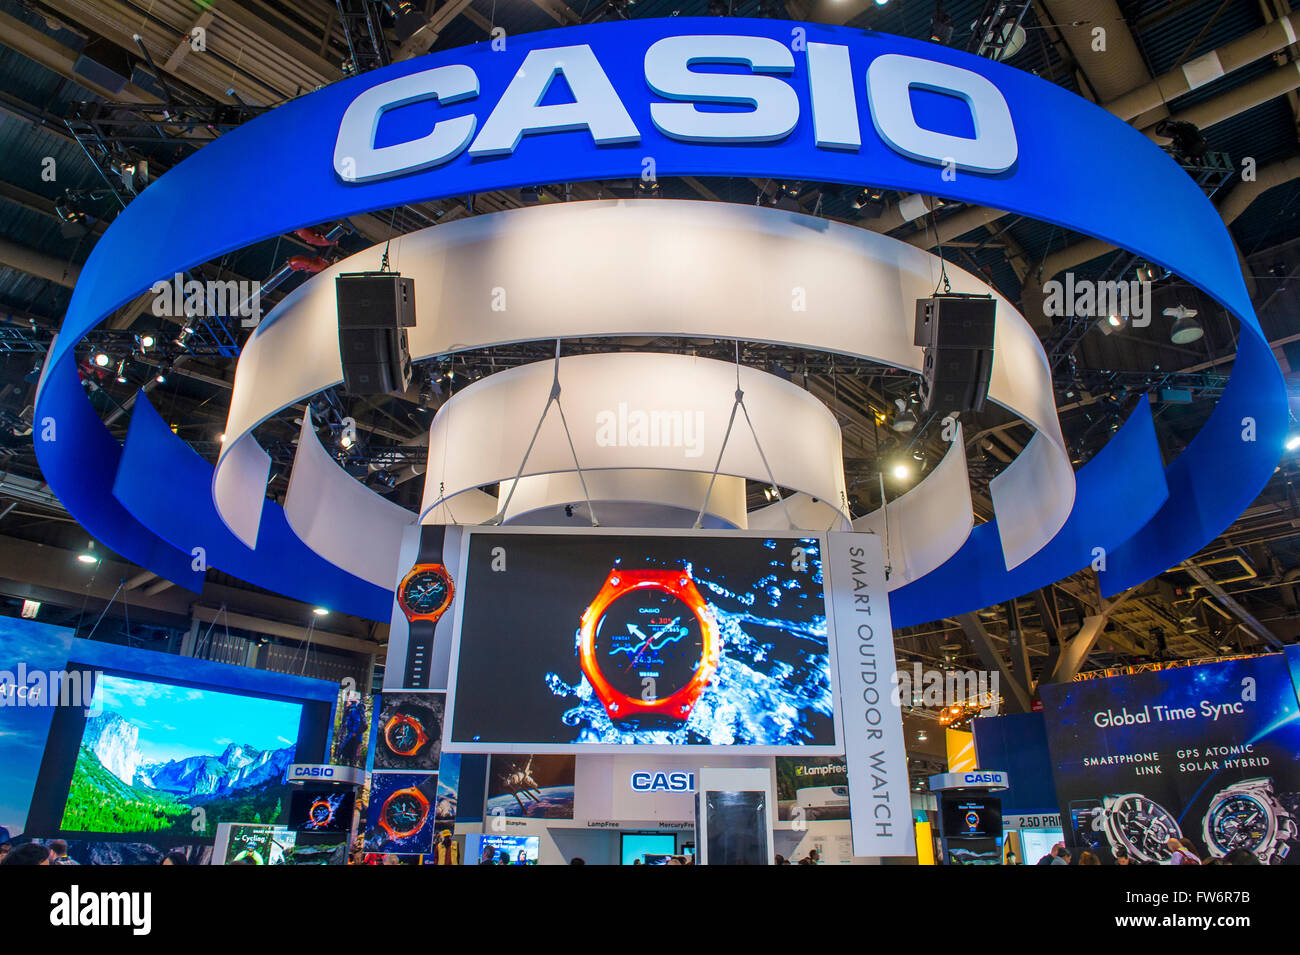 The Casio booth at the CES show in Las Vegas - Stock Image